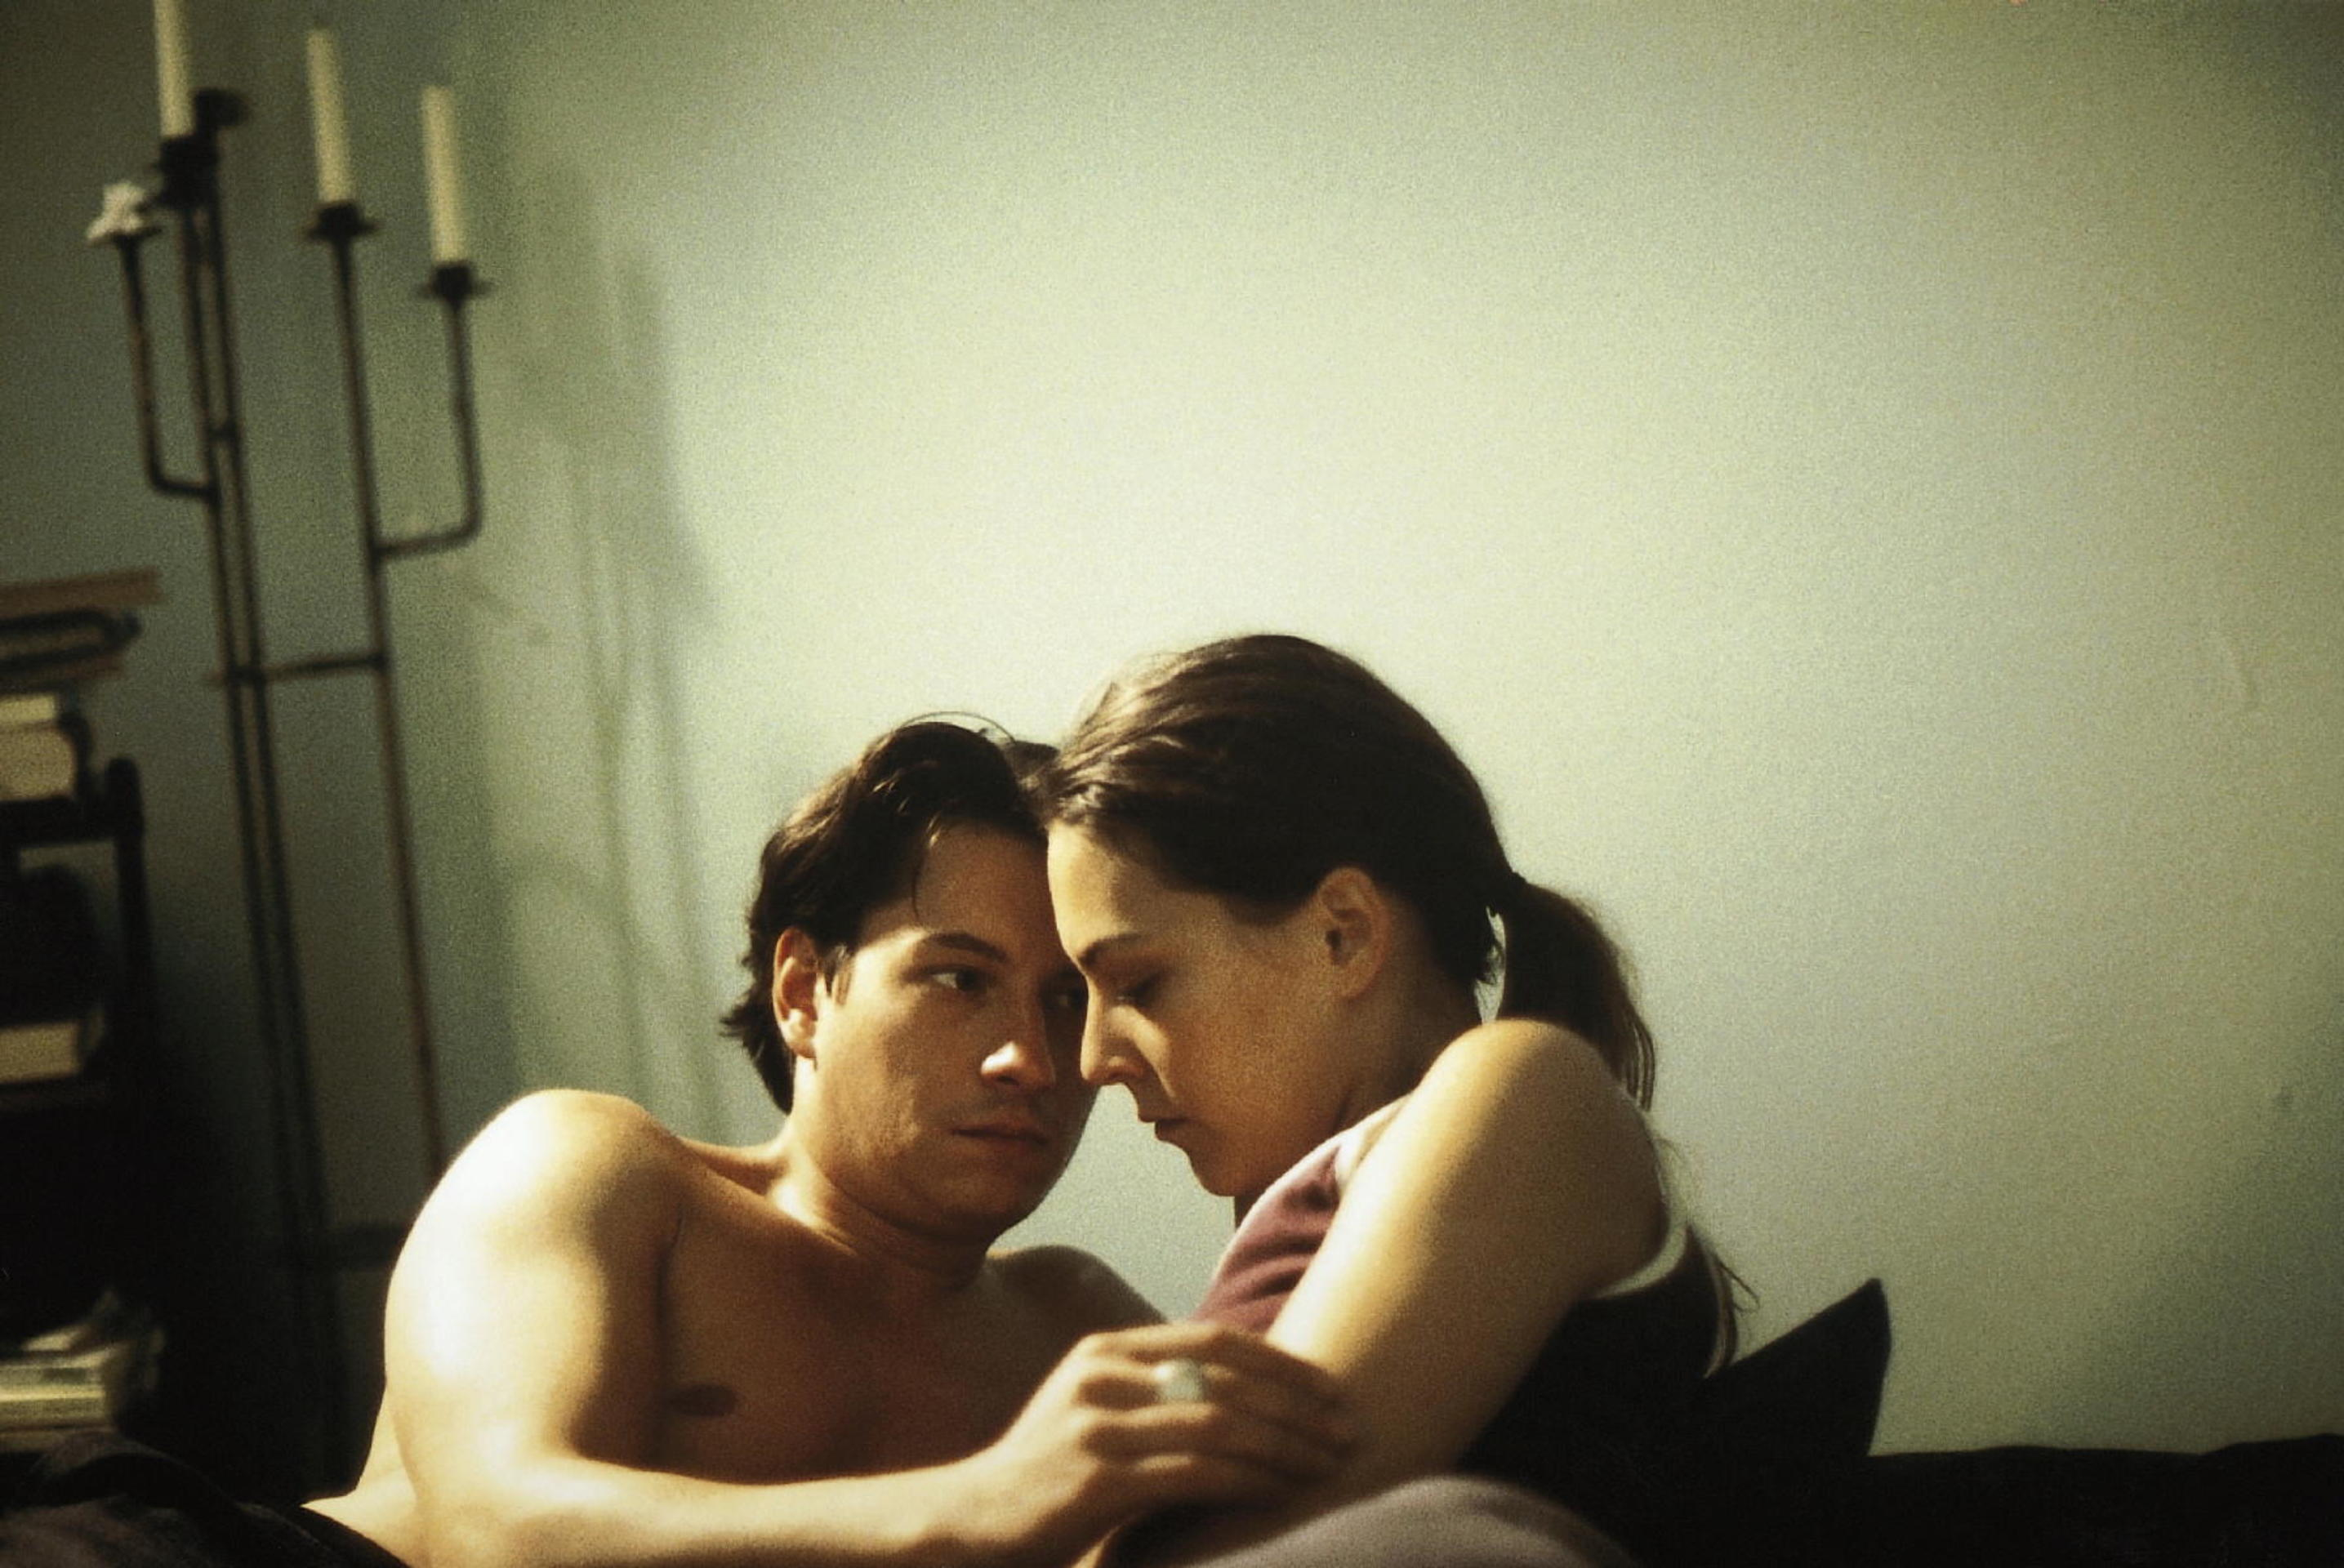 Jana Thies and Marcus Born in Stiller Sturm (2001)